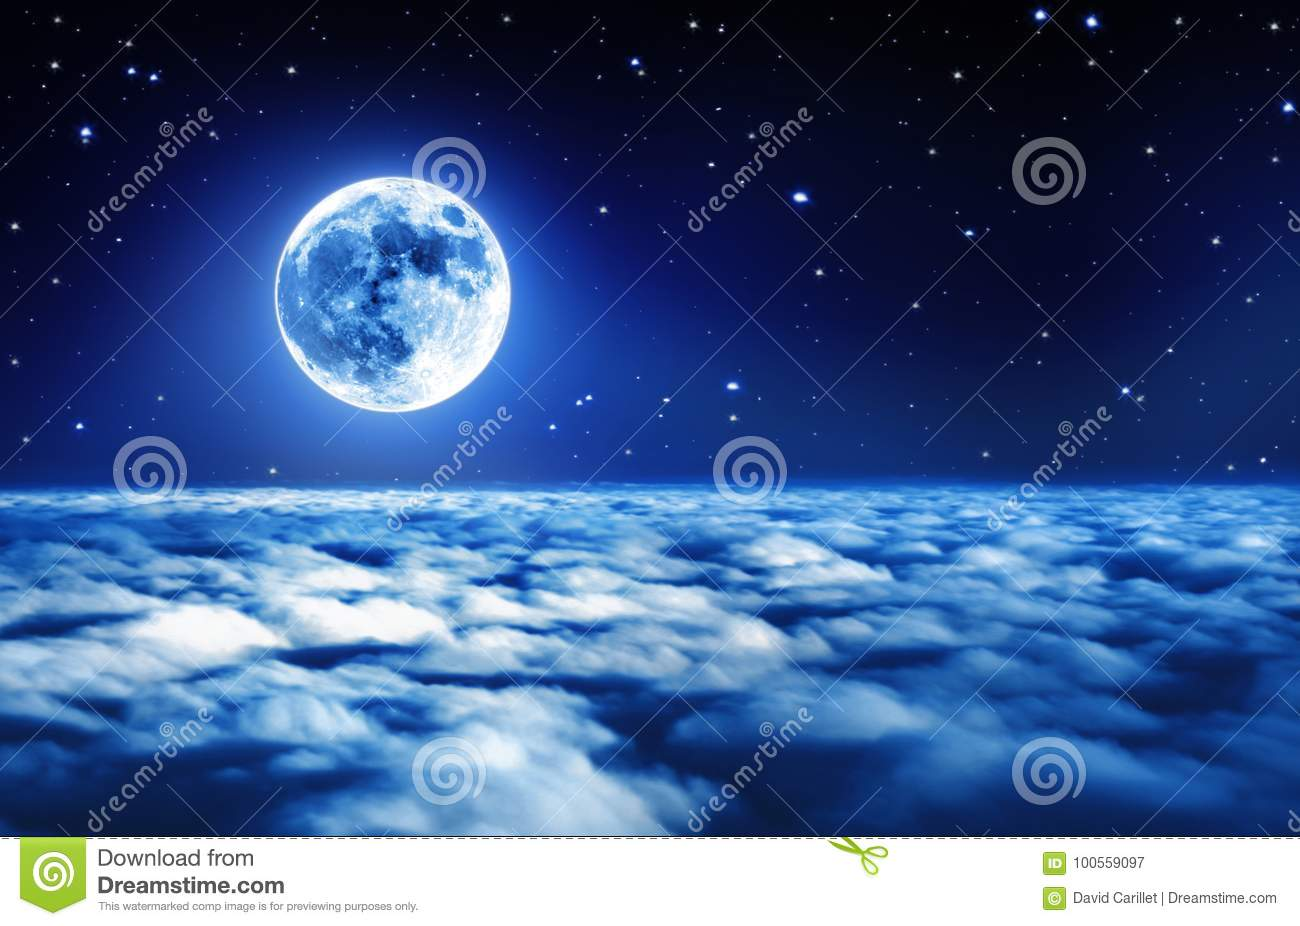 Bright full moon in a starry night sky above dreamy clouds with soft glowing light